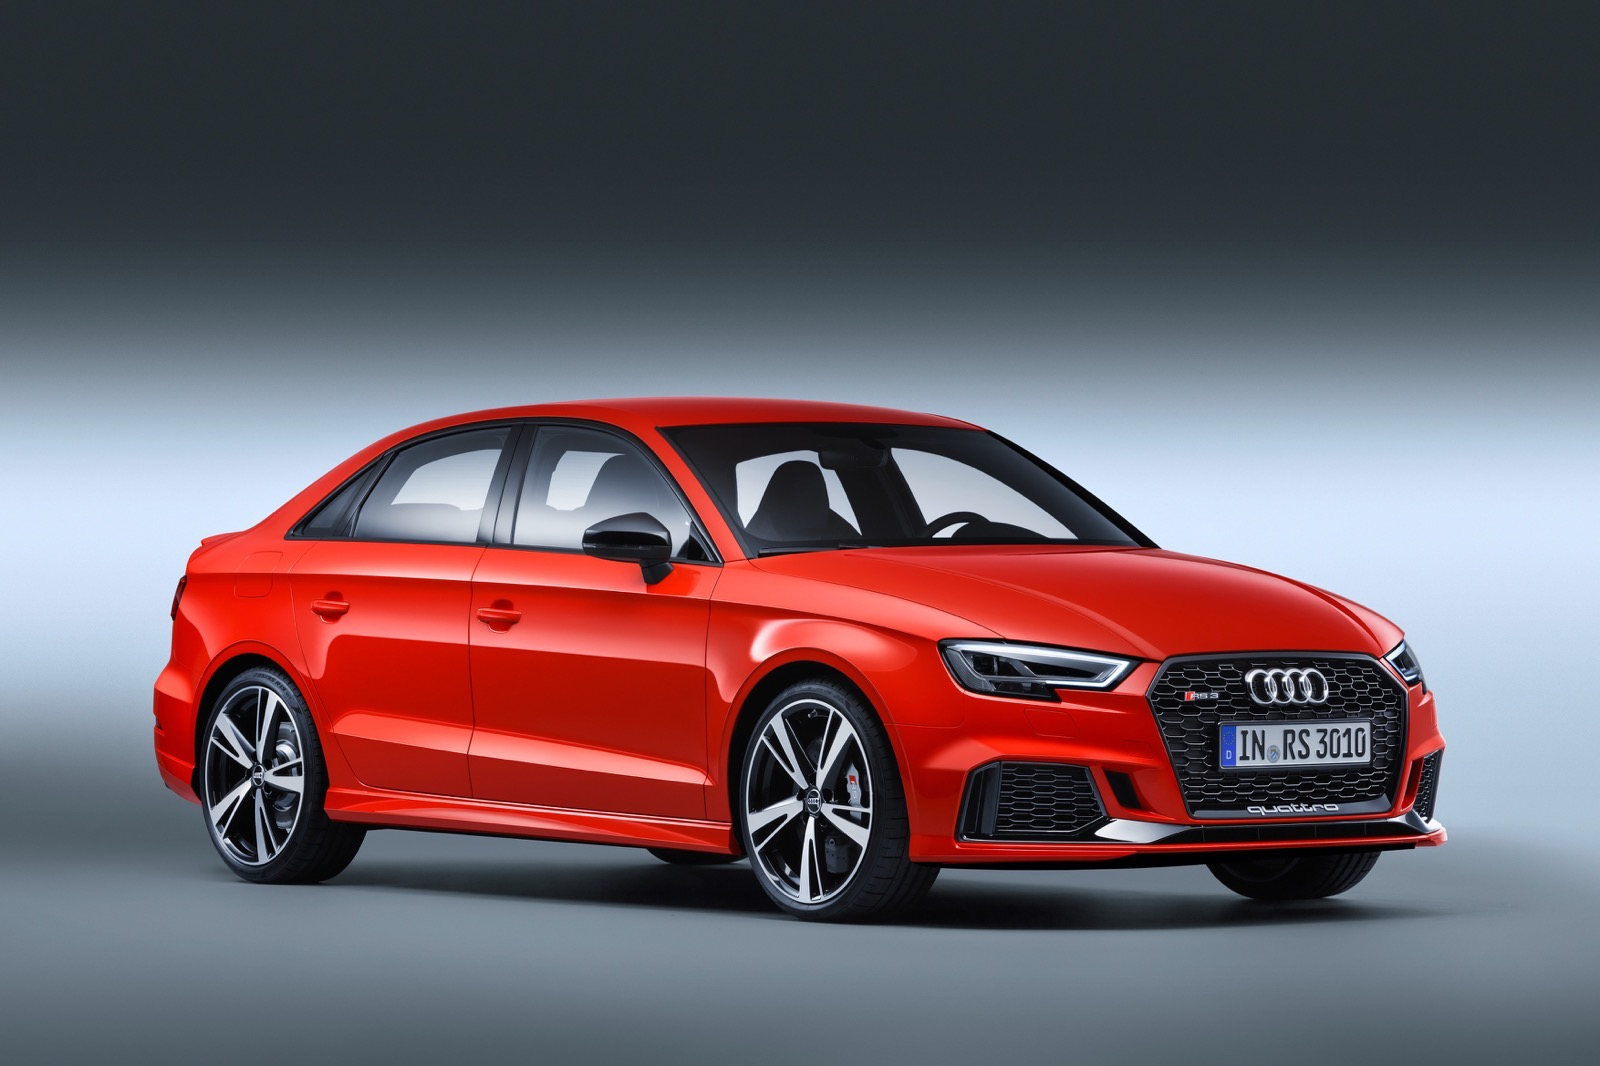 2016 paris auto show audi rs3 sedan. Black Bedroom Furniture Sets. Home Design Ideas